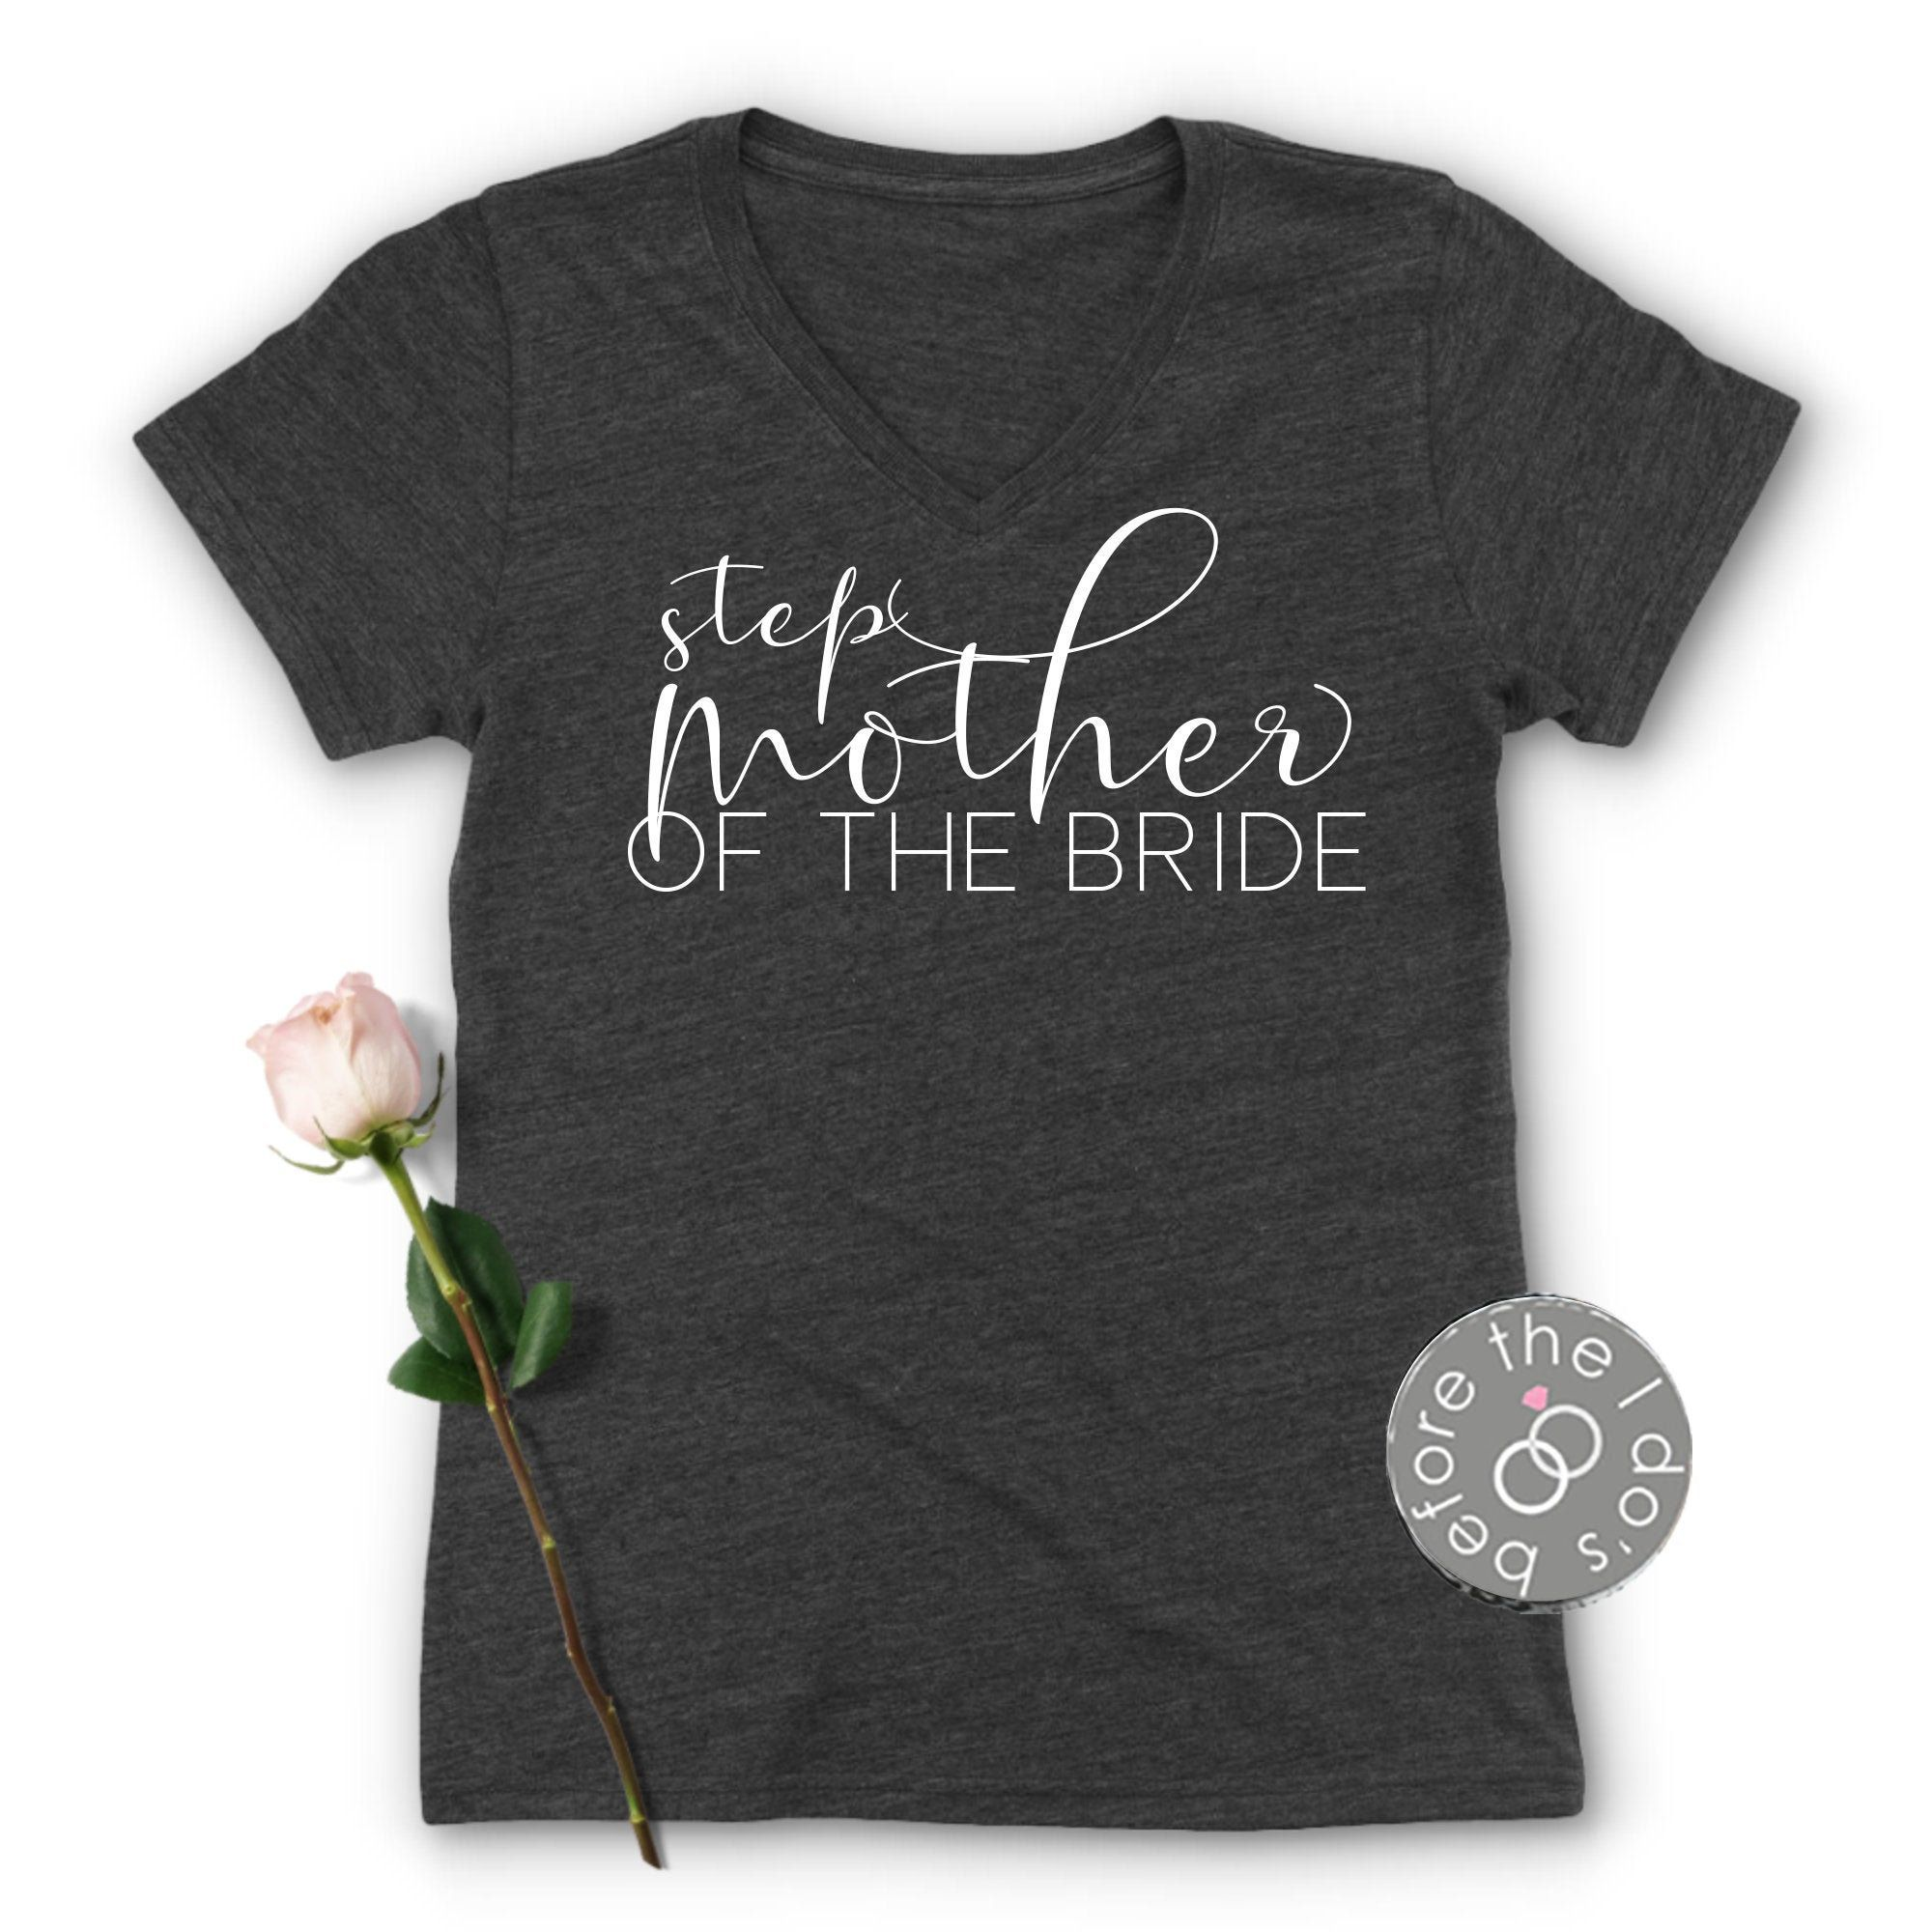 Step Mother Of The Bride Relaxed V Neck Tee Step Mother Of The Bride Shirt Bachelorette Party 2152 Vn Mother Of The Bride Bride Shirts V Neck Tee